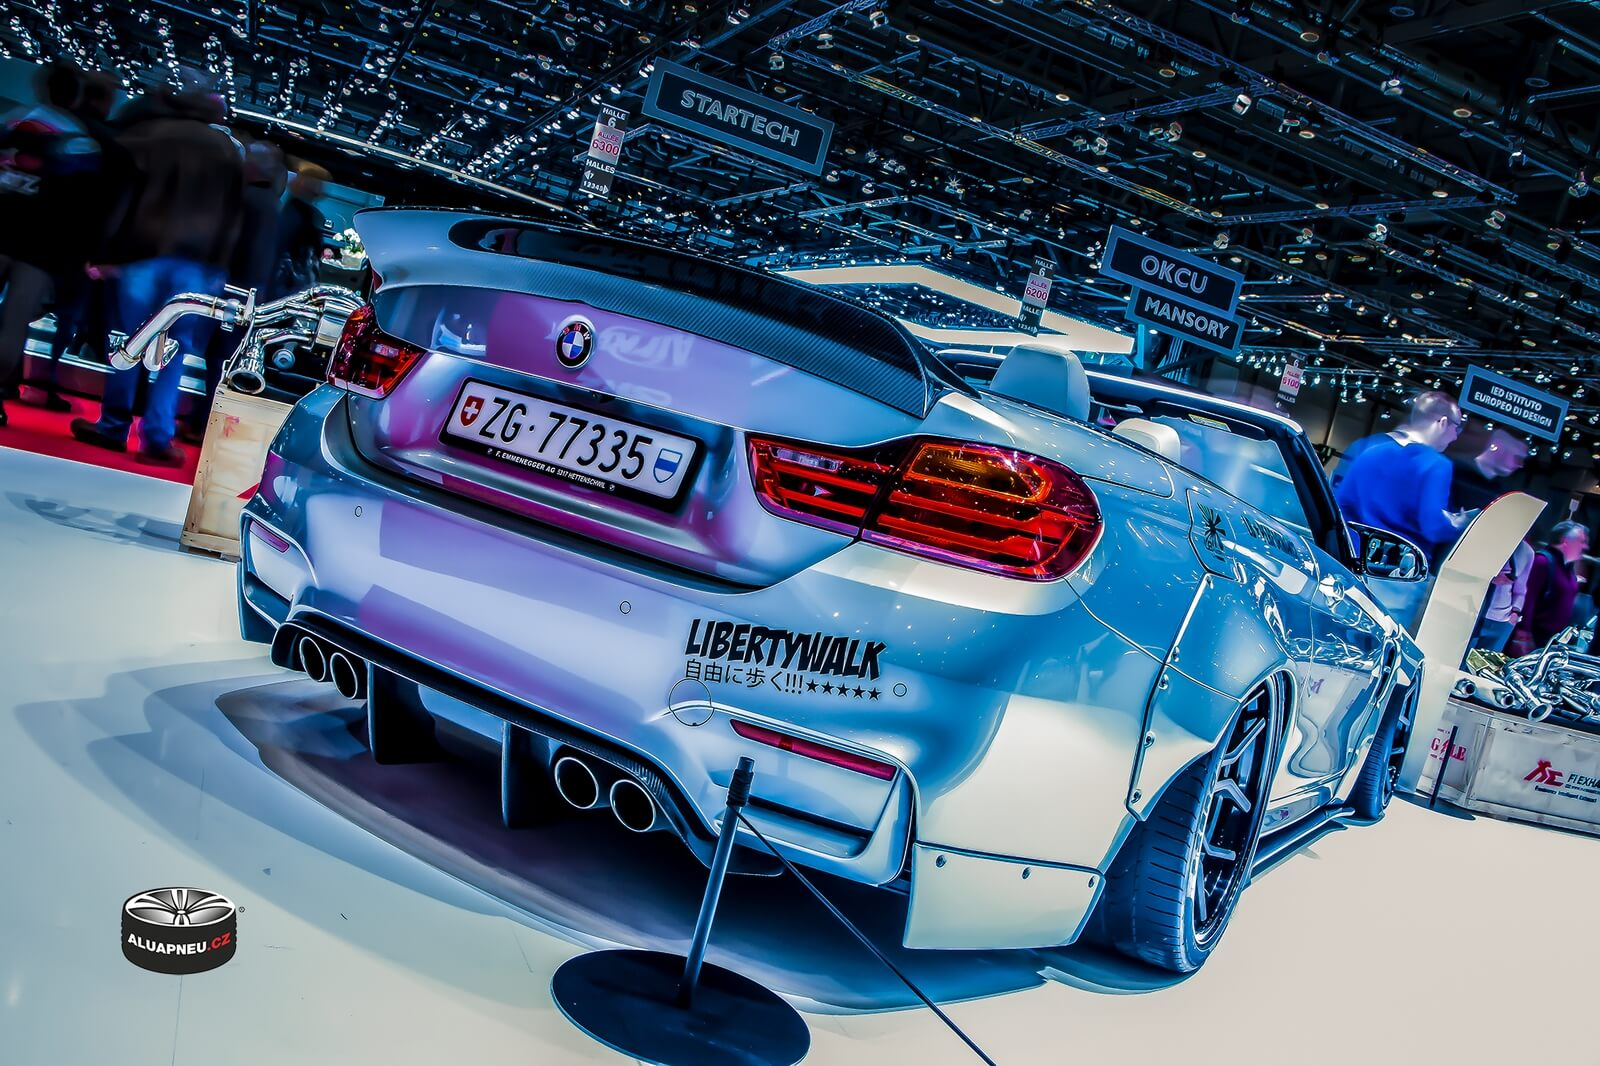 Liberty Walk BMW